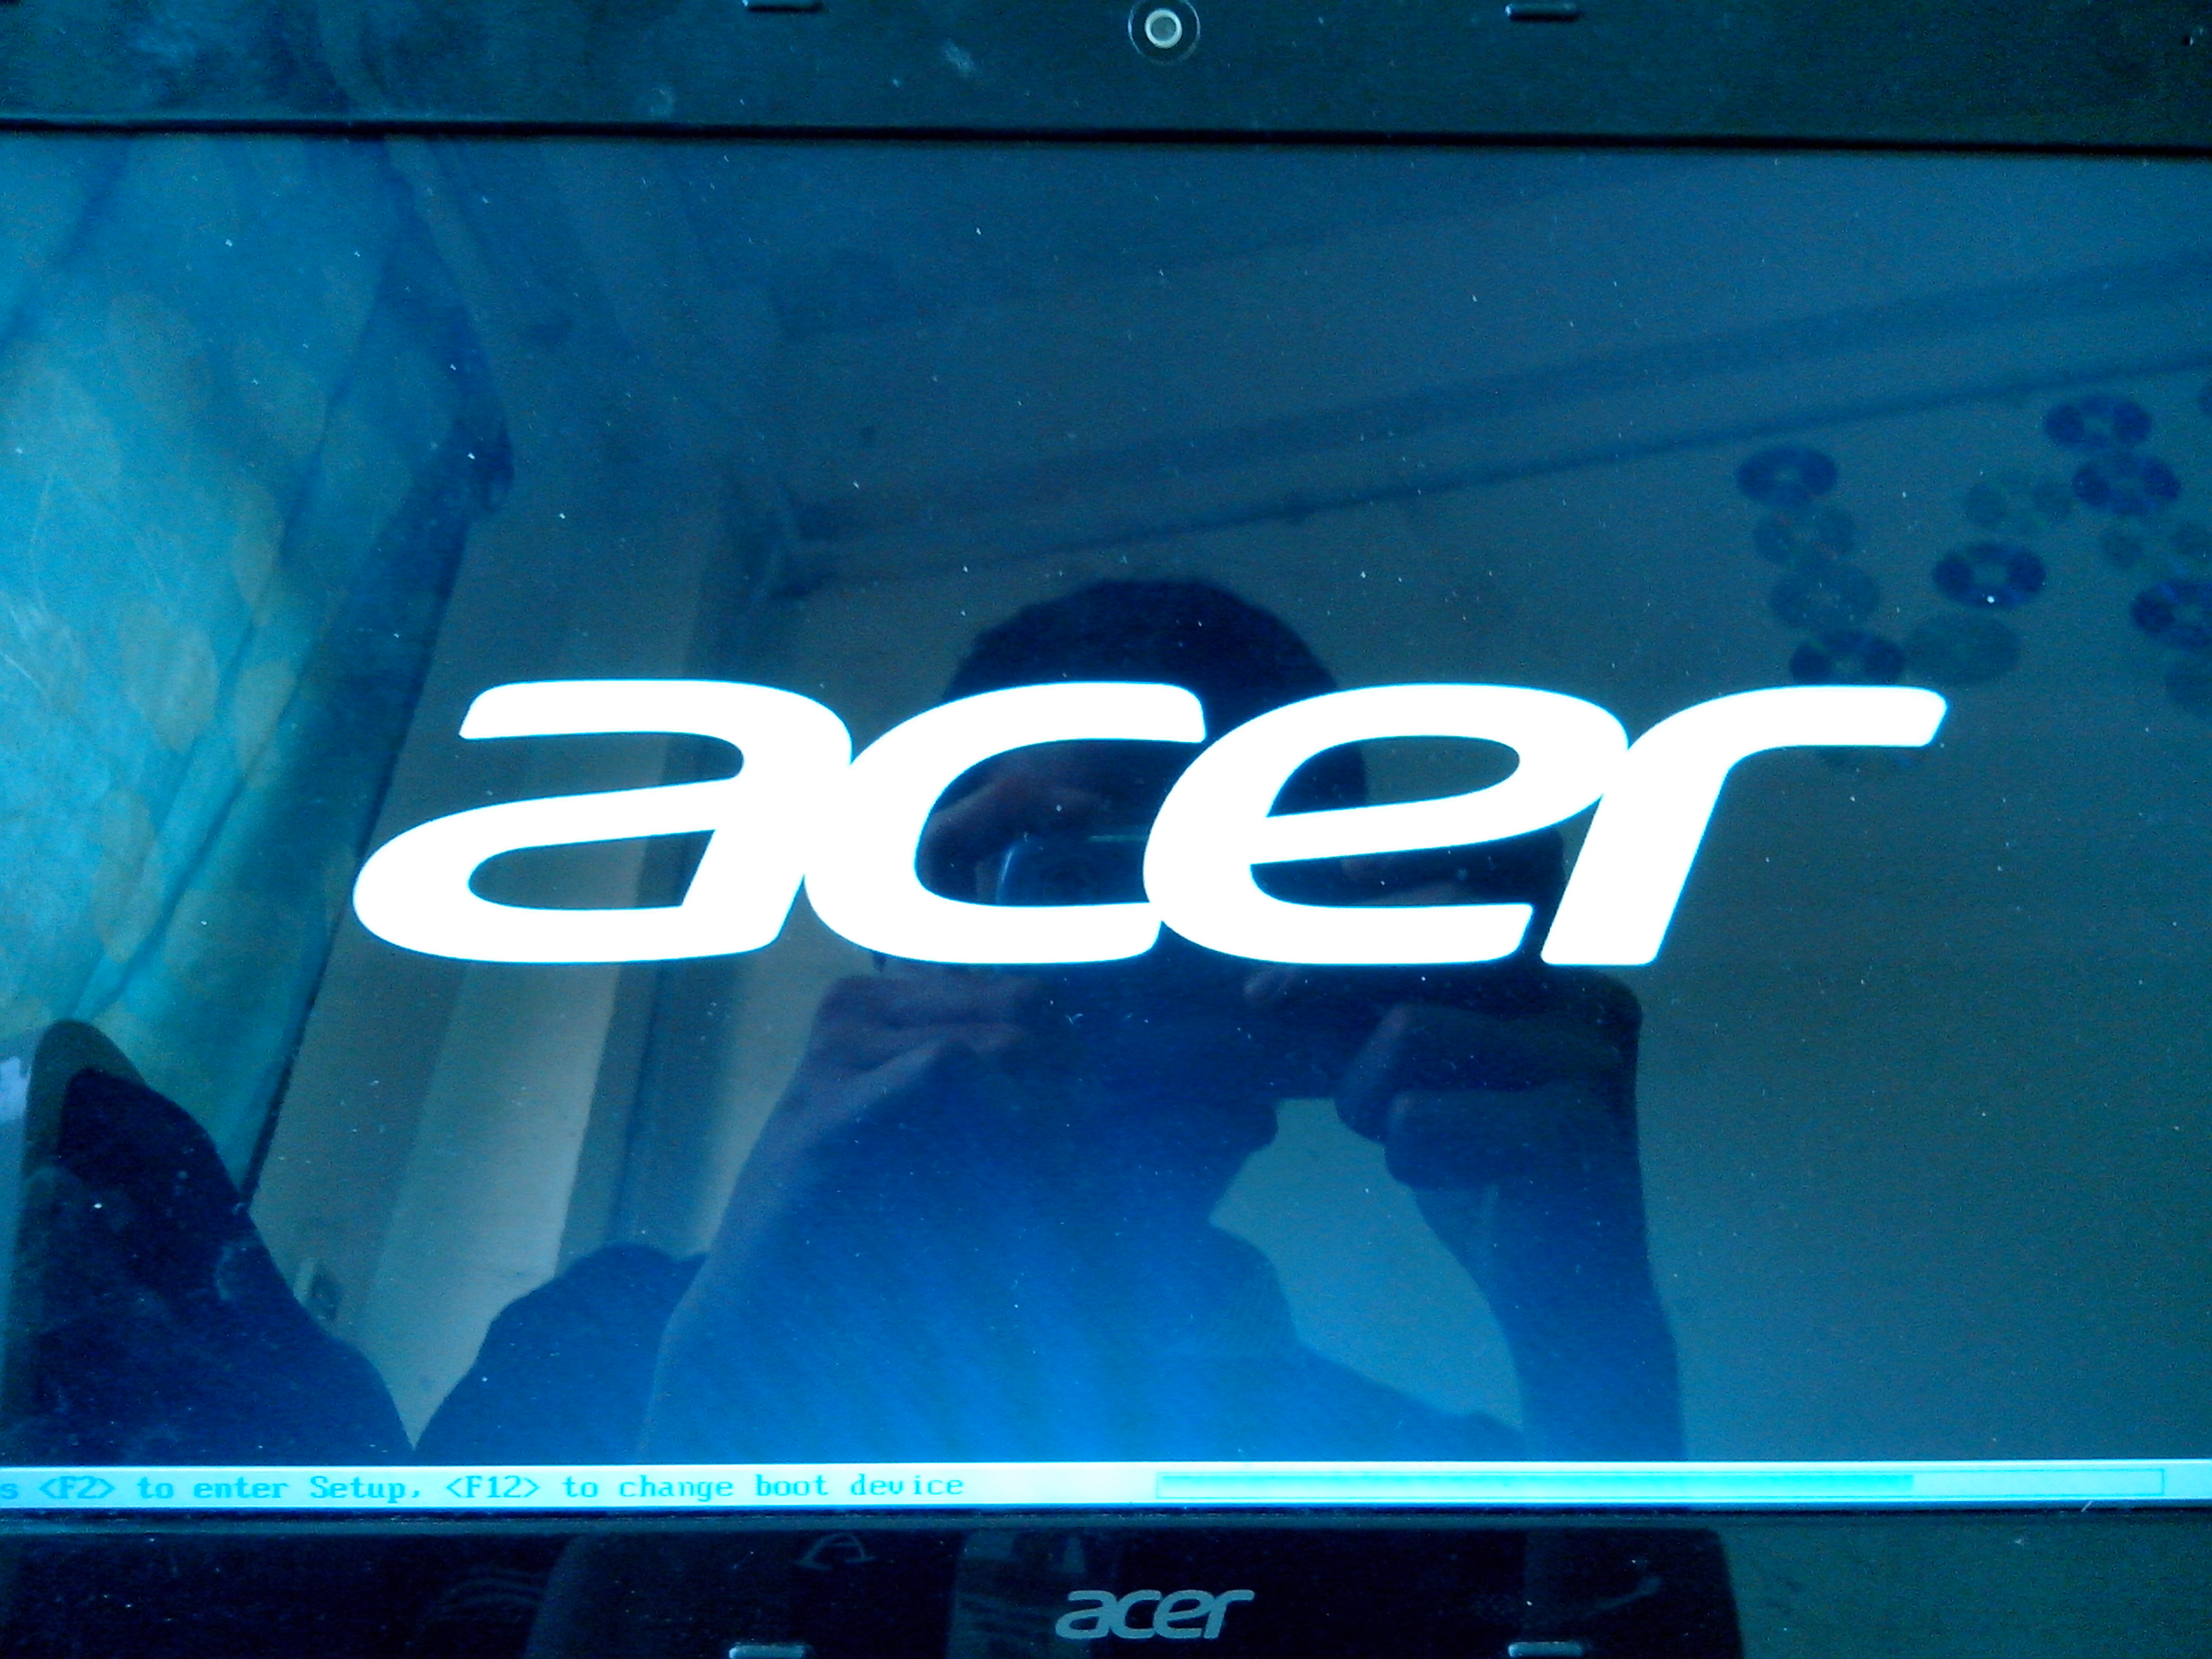 Acer 4752G: Boot screen hangs